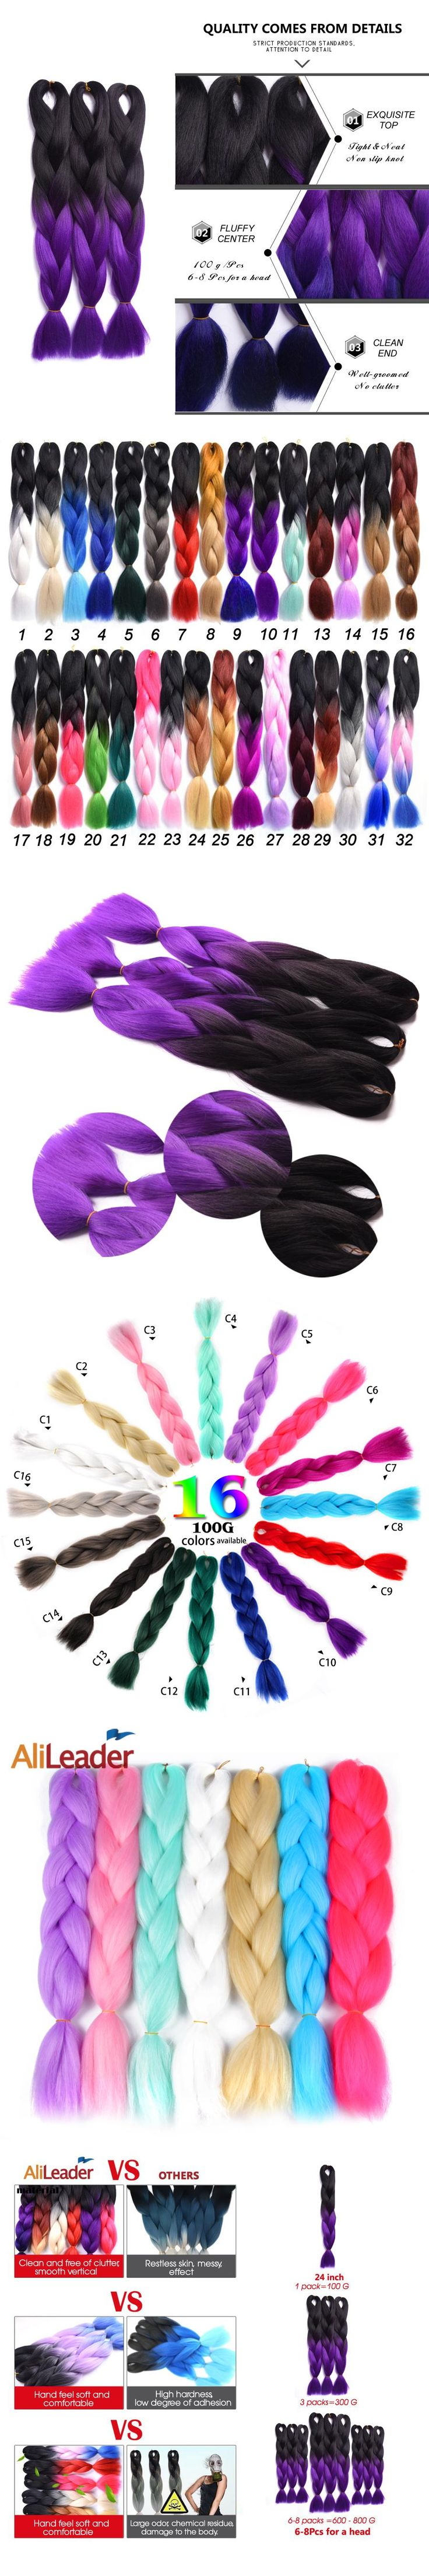 Alileader Kanekalon Synthetic Braiding Hair Two Tone Crochet Twist Hair Purple Hair Extensions Black African Braids 24Inch 100G